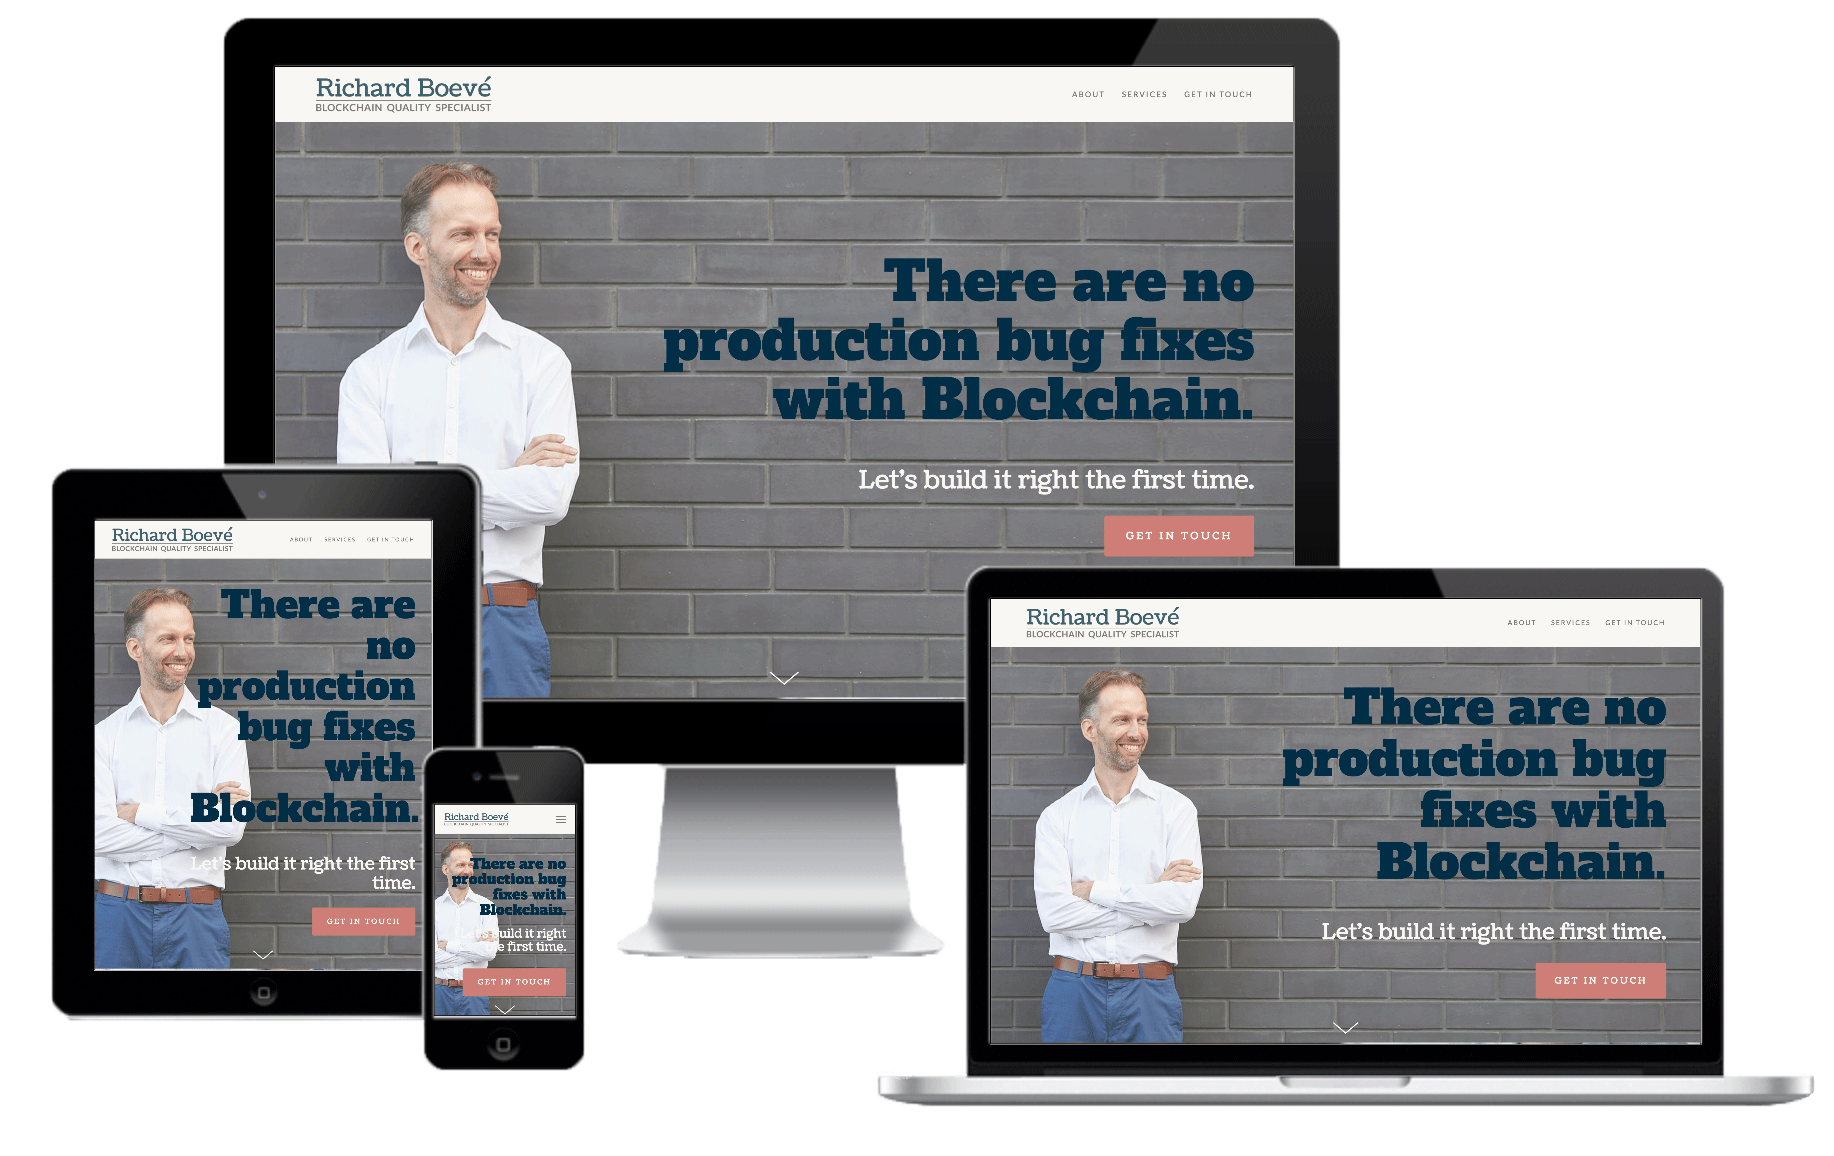 Branded Website - The final product we created was a fully-responsive personal website, which showcases Richard's strengths and approach to creating blockchain testing solutions in a way that immediately communicates his unique brand and value proposition to any visitor. Check it out and get to know Richard Boevéhere.